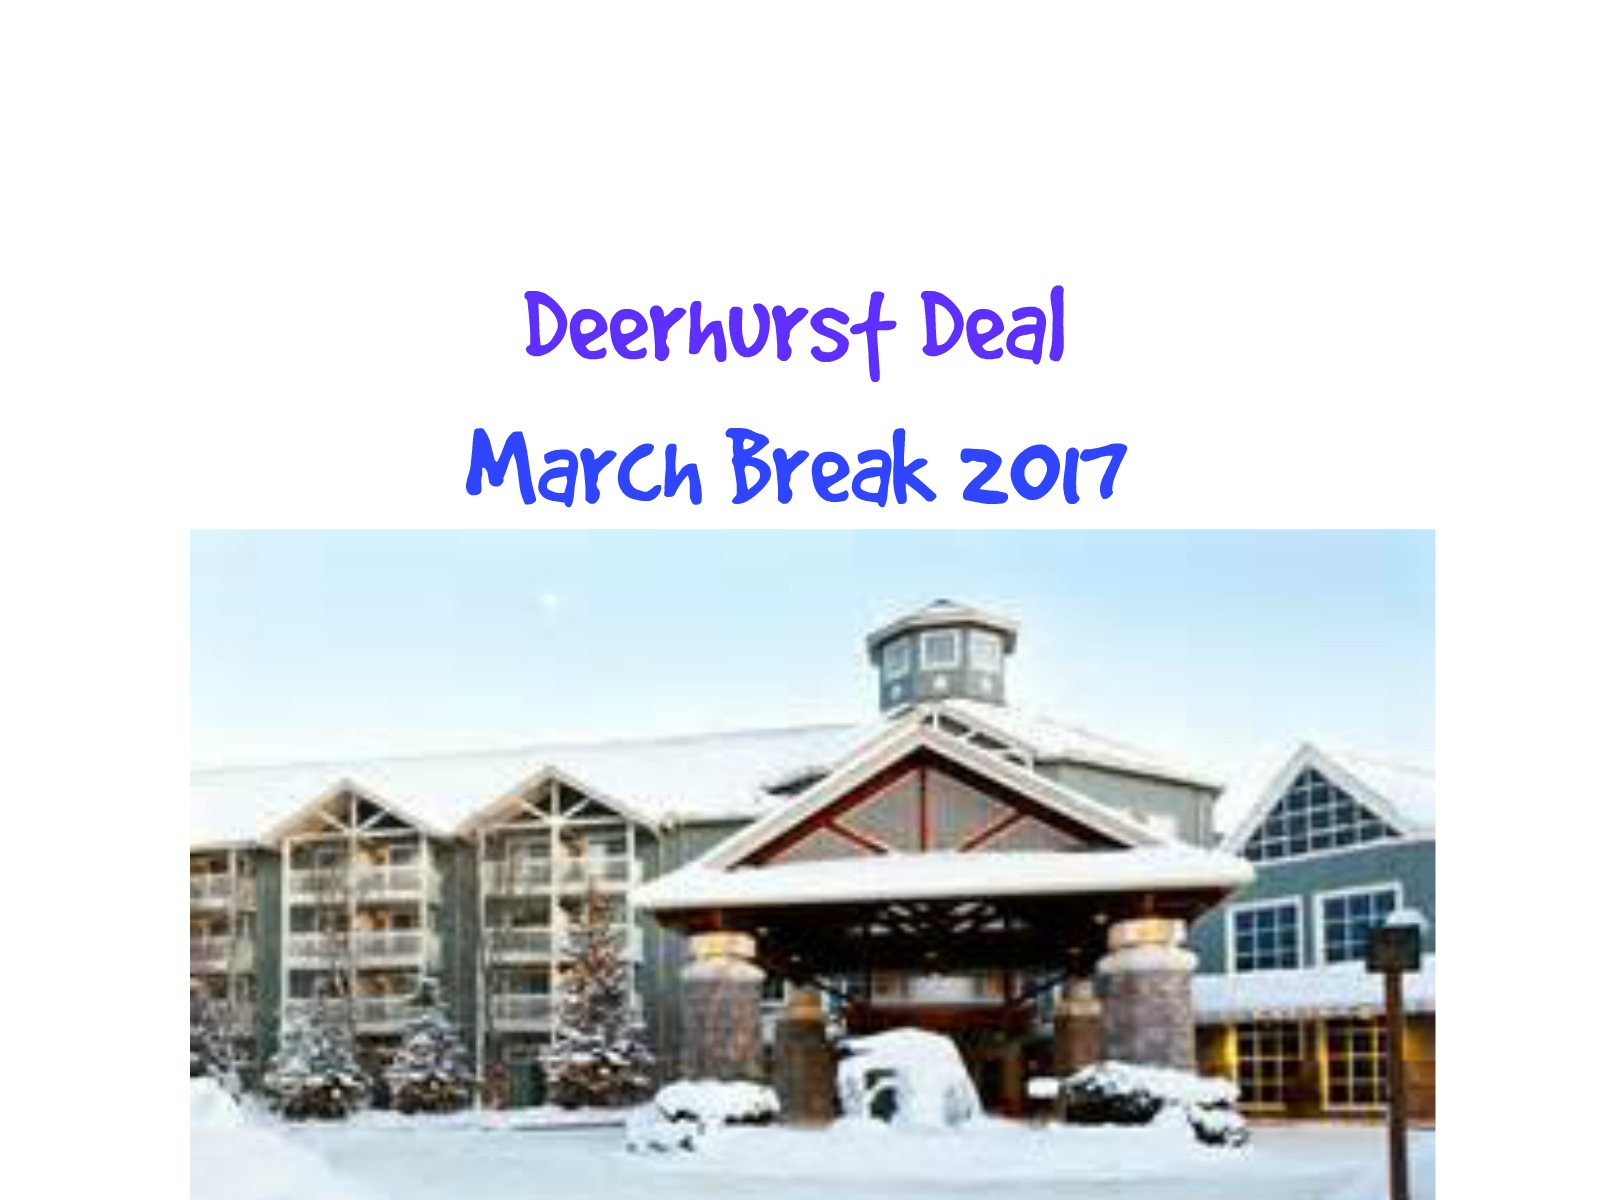 March Break Deerhurst Deal!